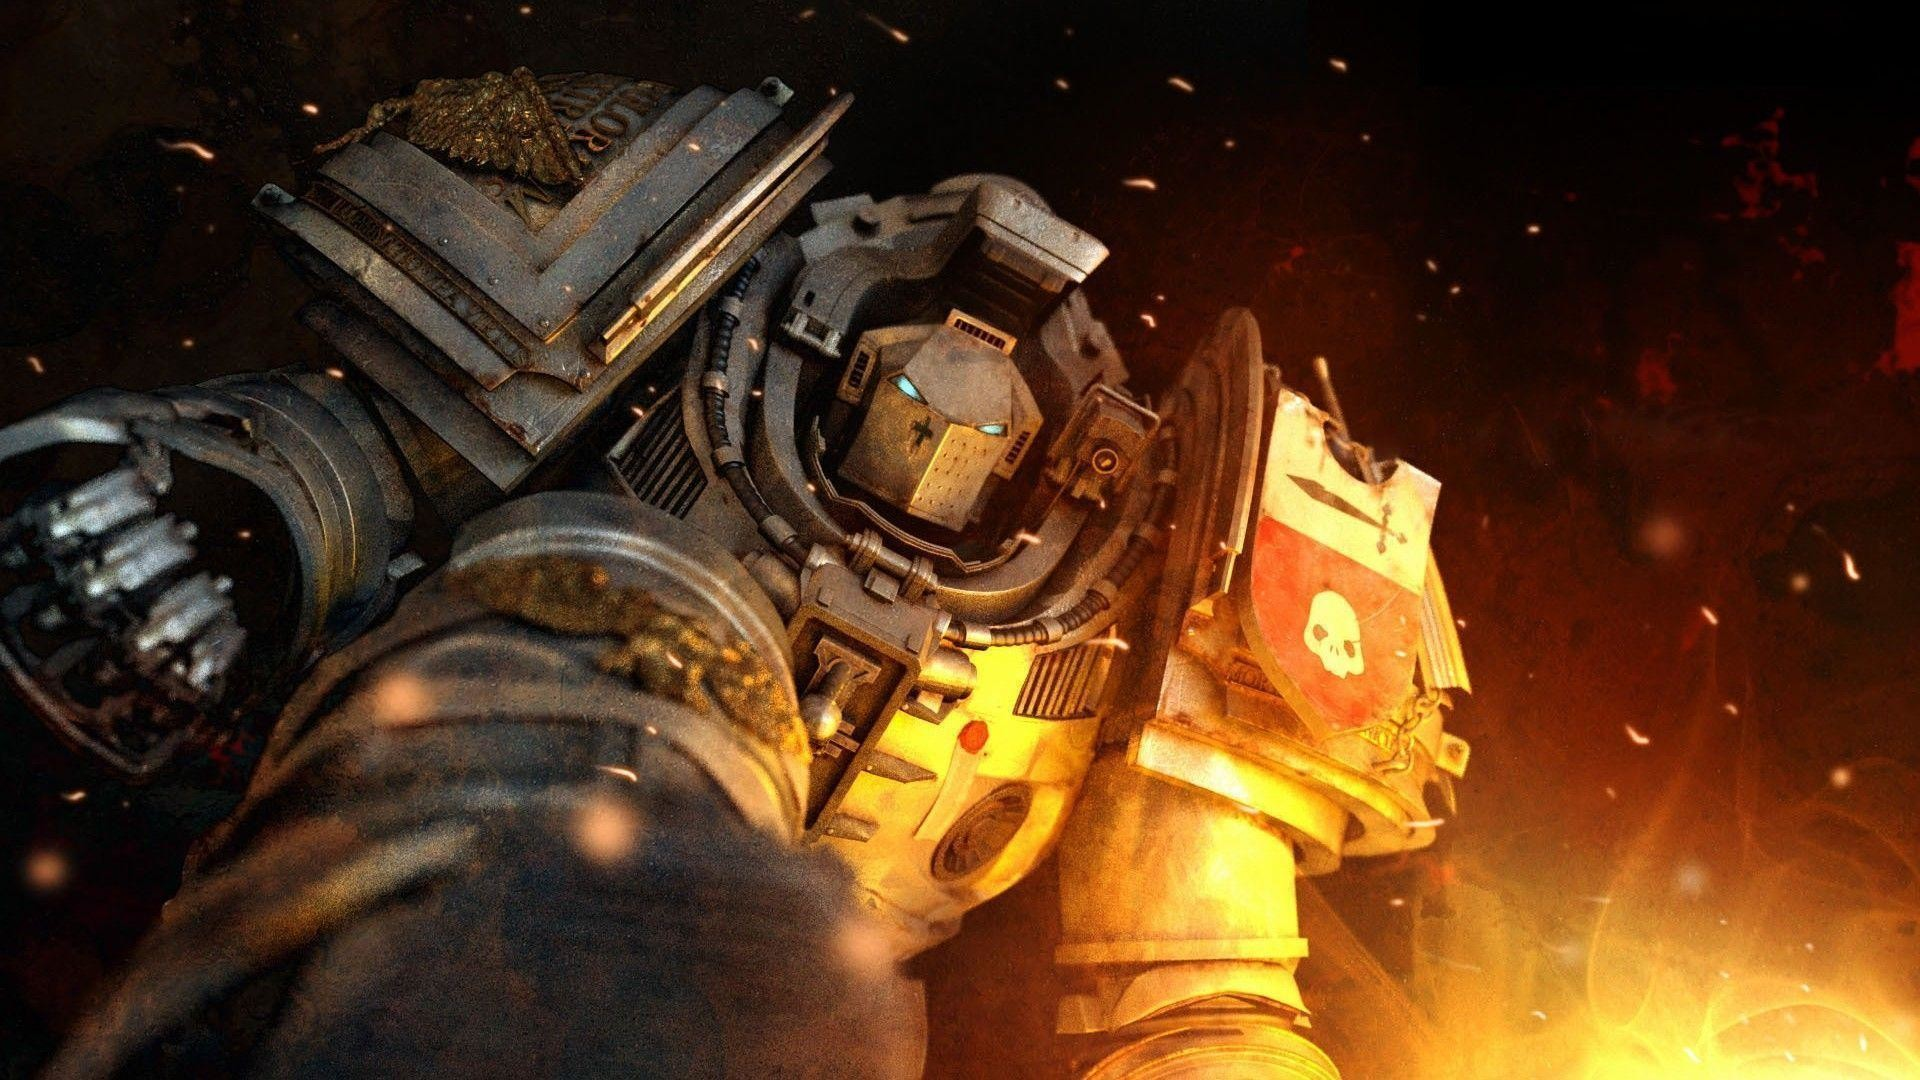 Grey Knight Space Marine Wallpaper px Free Download .